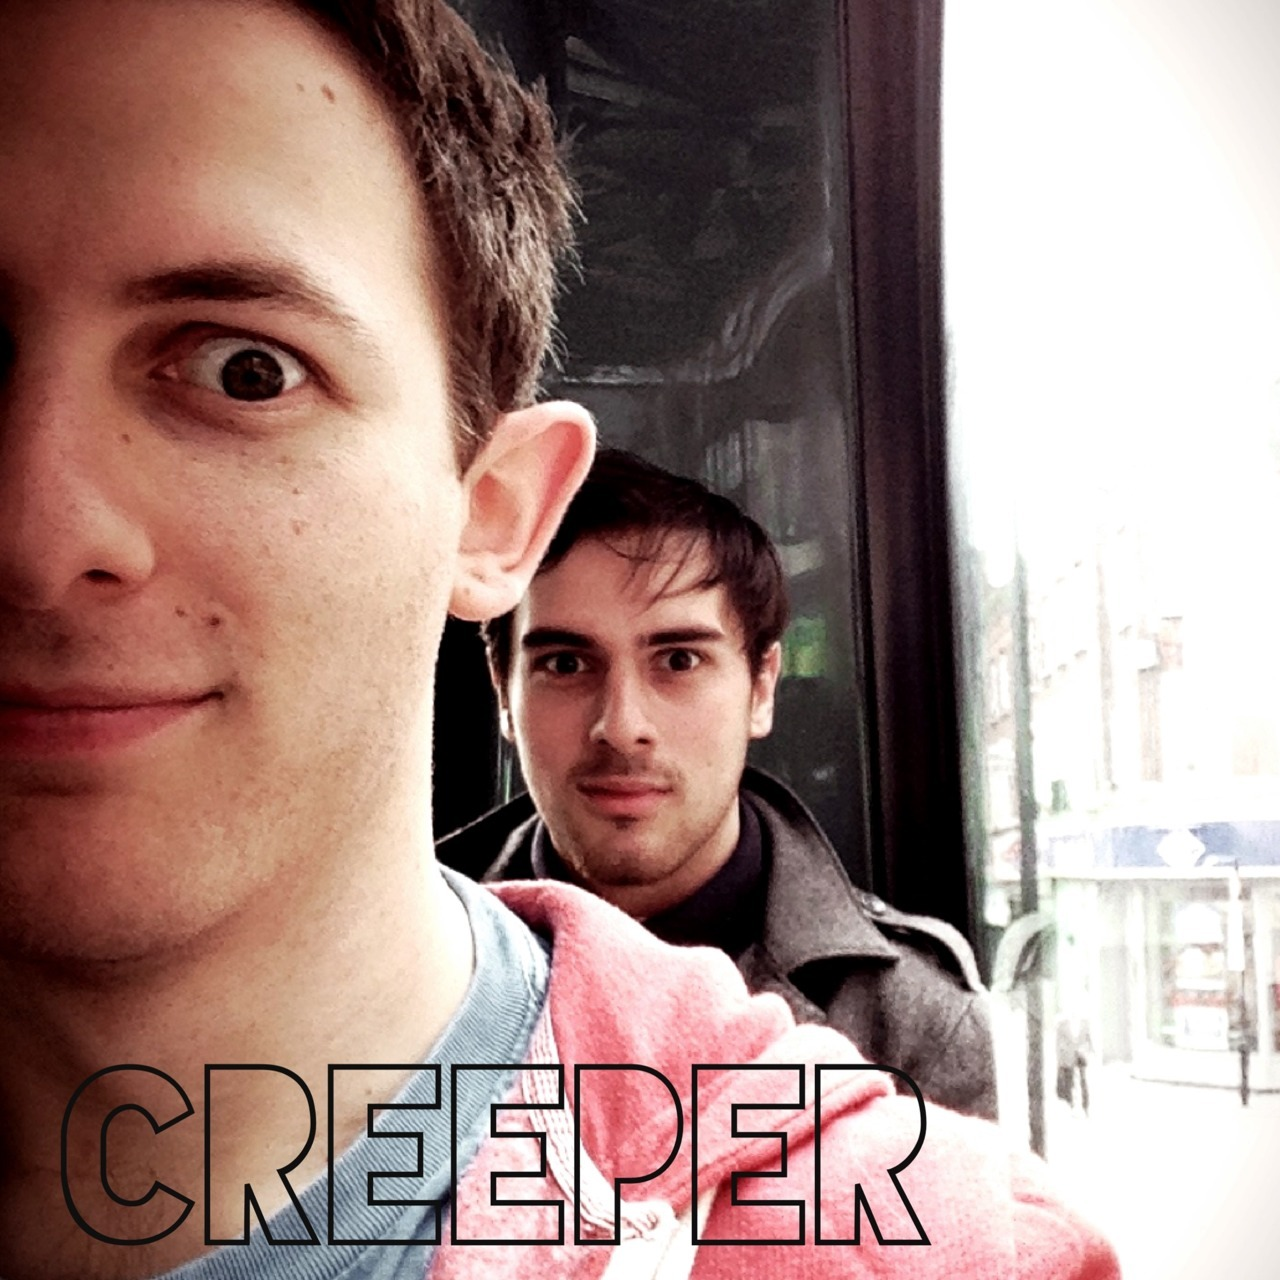 Creeper on the bus